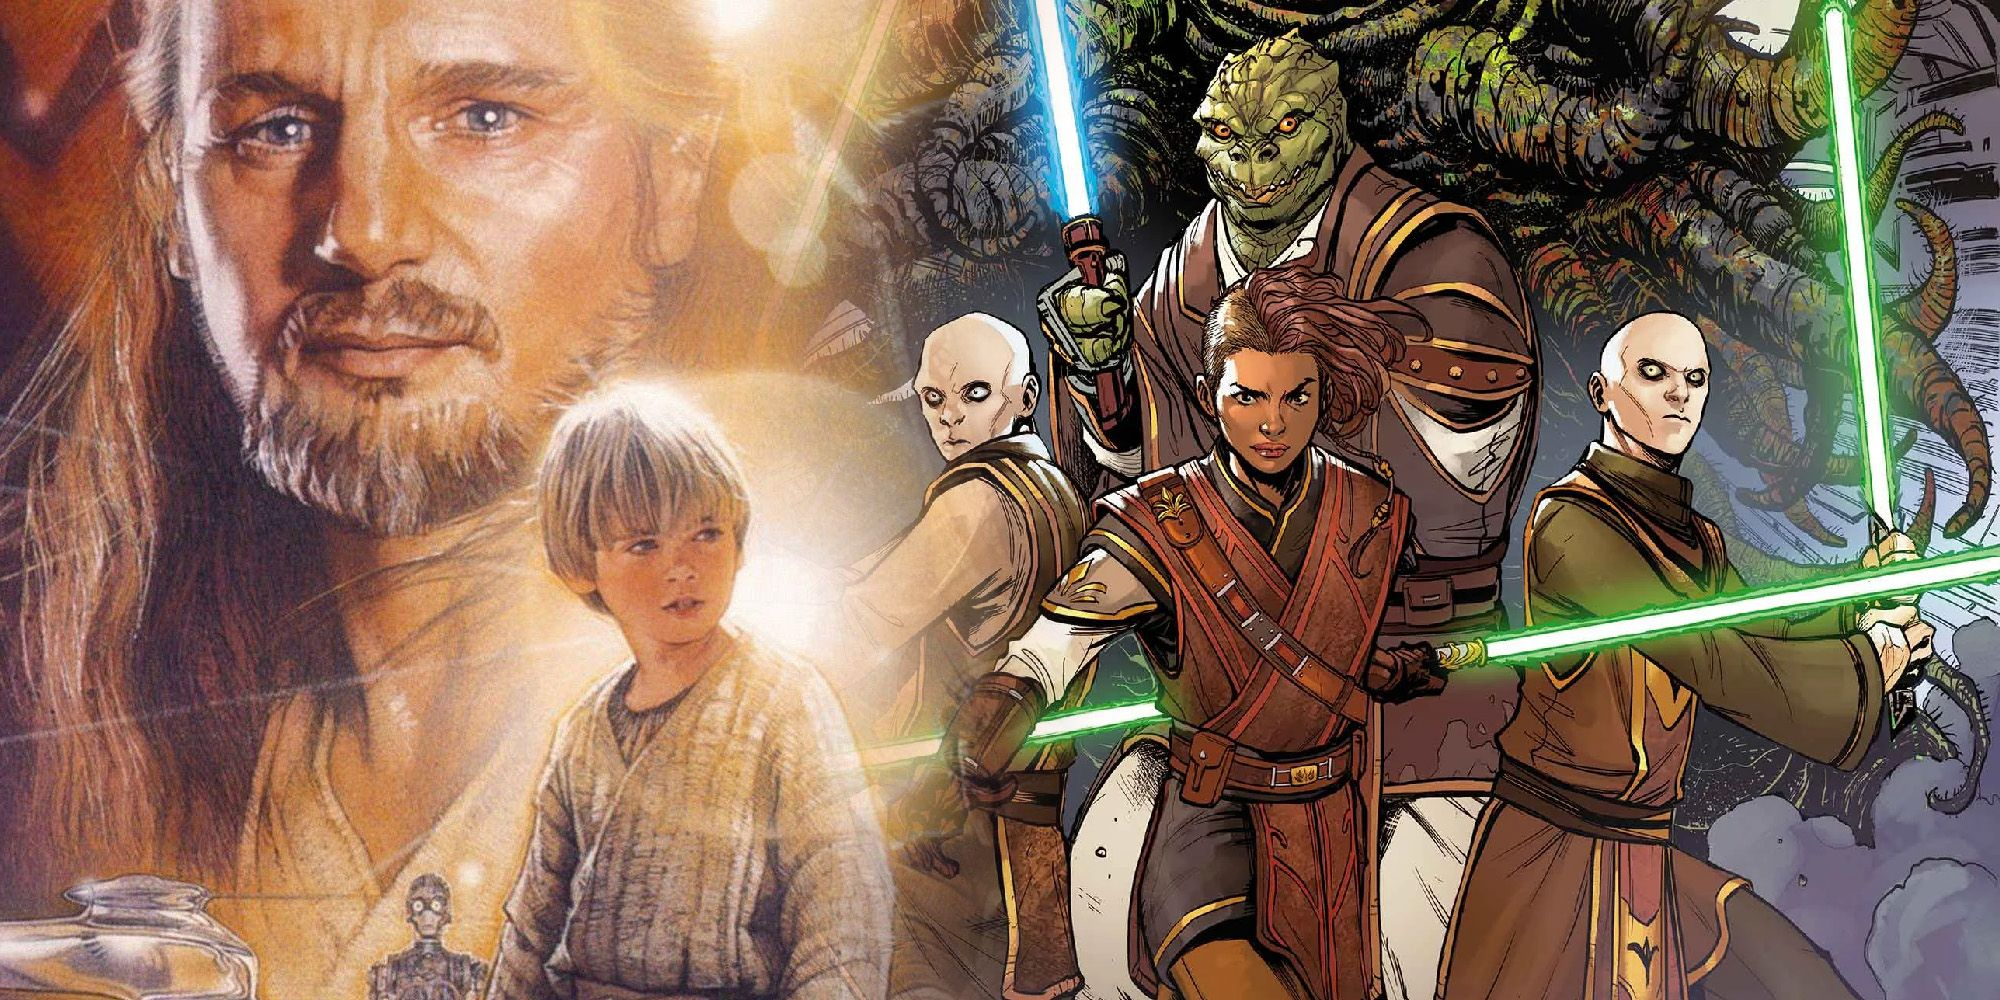 Star Wars: Biggest Reveals About The Jedi Order Before Phantom Menace